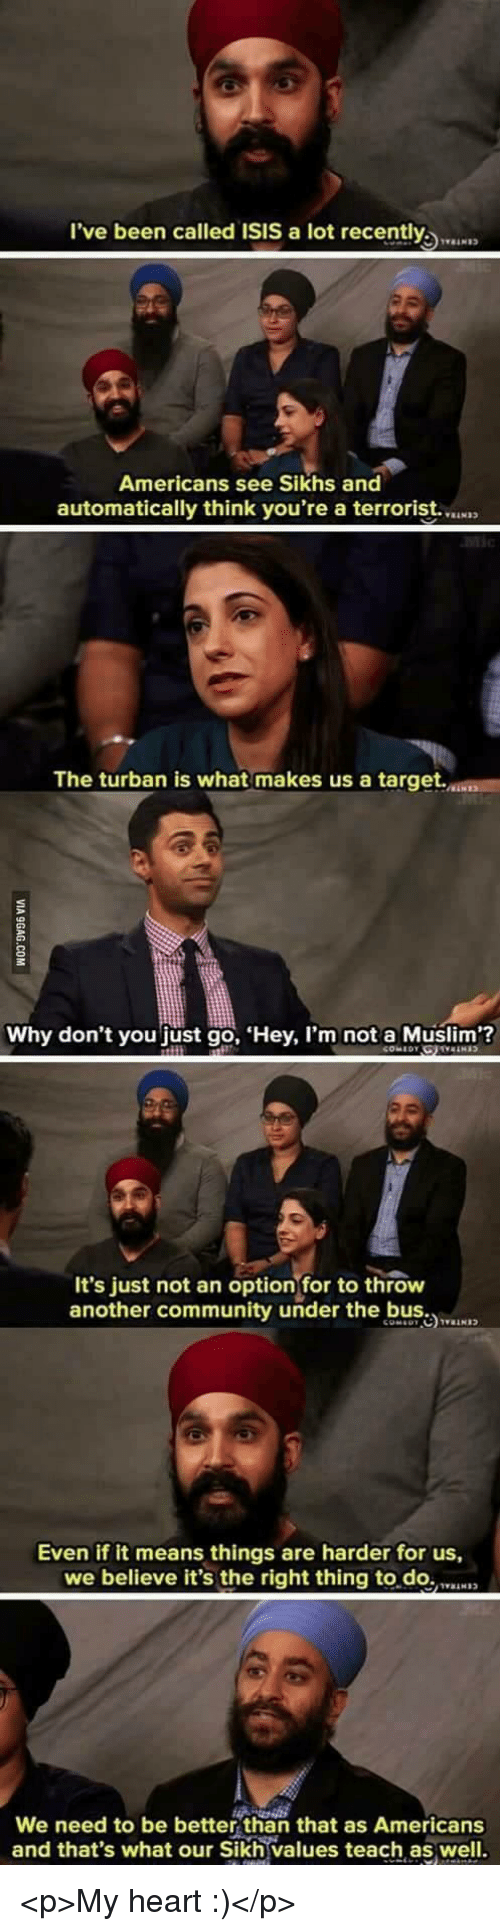 Community, Isis, and Muslim: l've been called ISIS a lot recently  Americans see Sikhs and  automatically think you're a terrorist.  The turban is what makes us a target.  Why don't you just go, Hey, I'm not a Muslim?  It's just not an optionfor to throw  another community under the b  Even if it means things are harder for us,  we believe it's the right thing to.do.N  We need to be better than that as Americans  and that's what our Sikh values teach as well. <p>My heart :)</p>